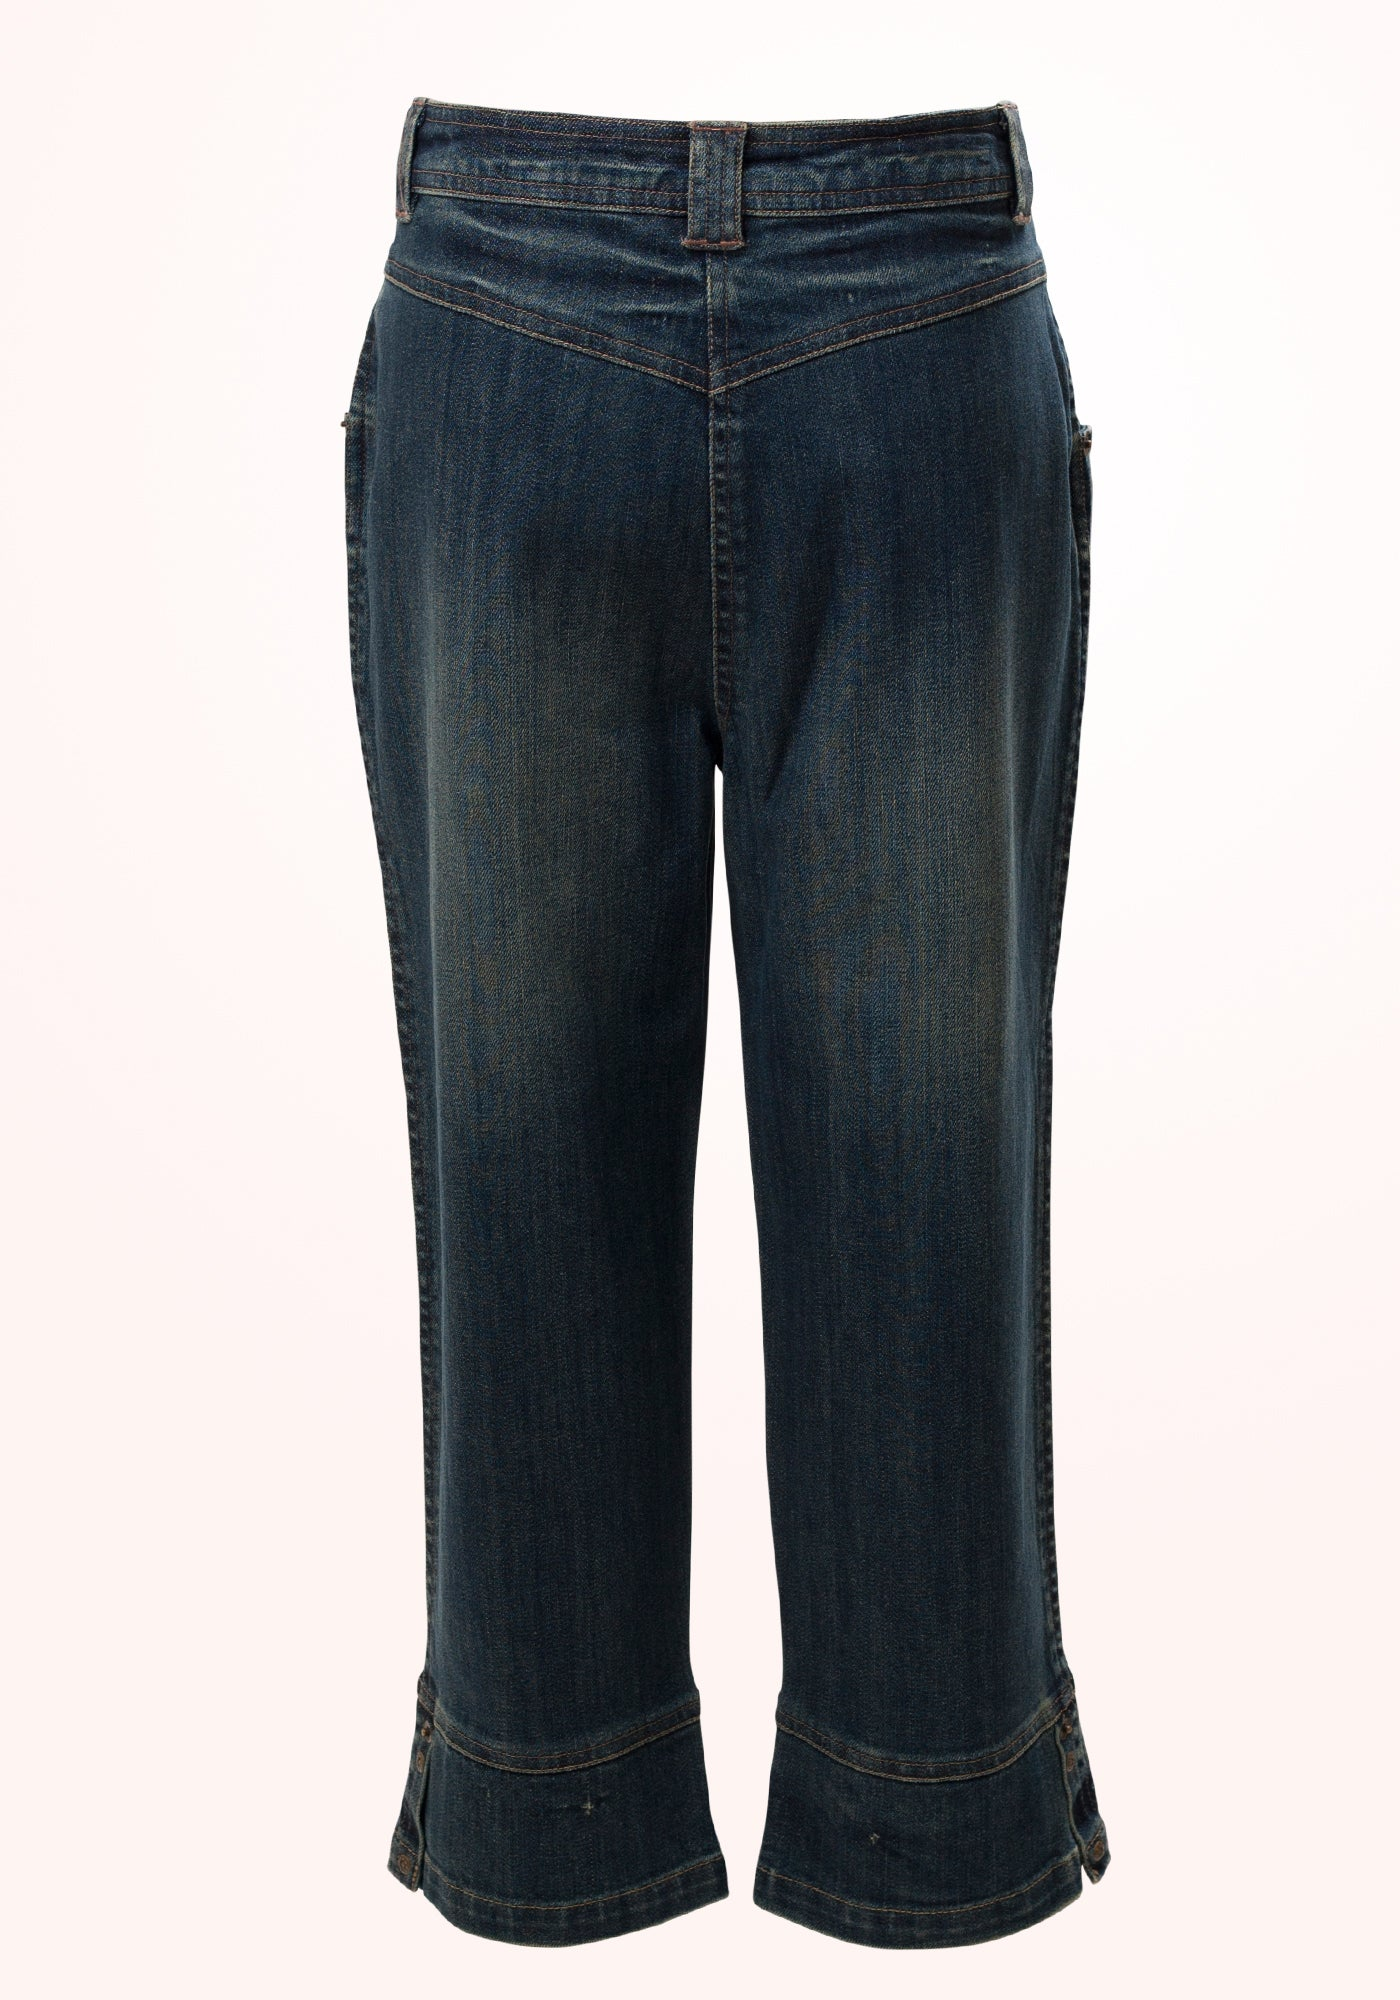 Thunderbolt Girls trousers in Blue Denim - MINC ecofashion